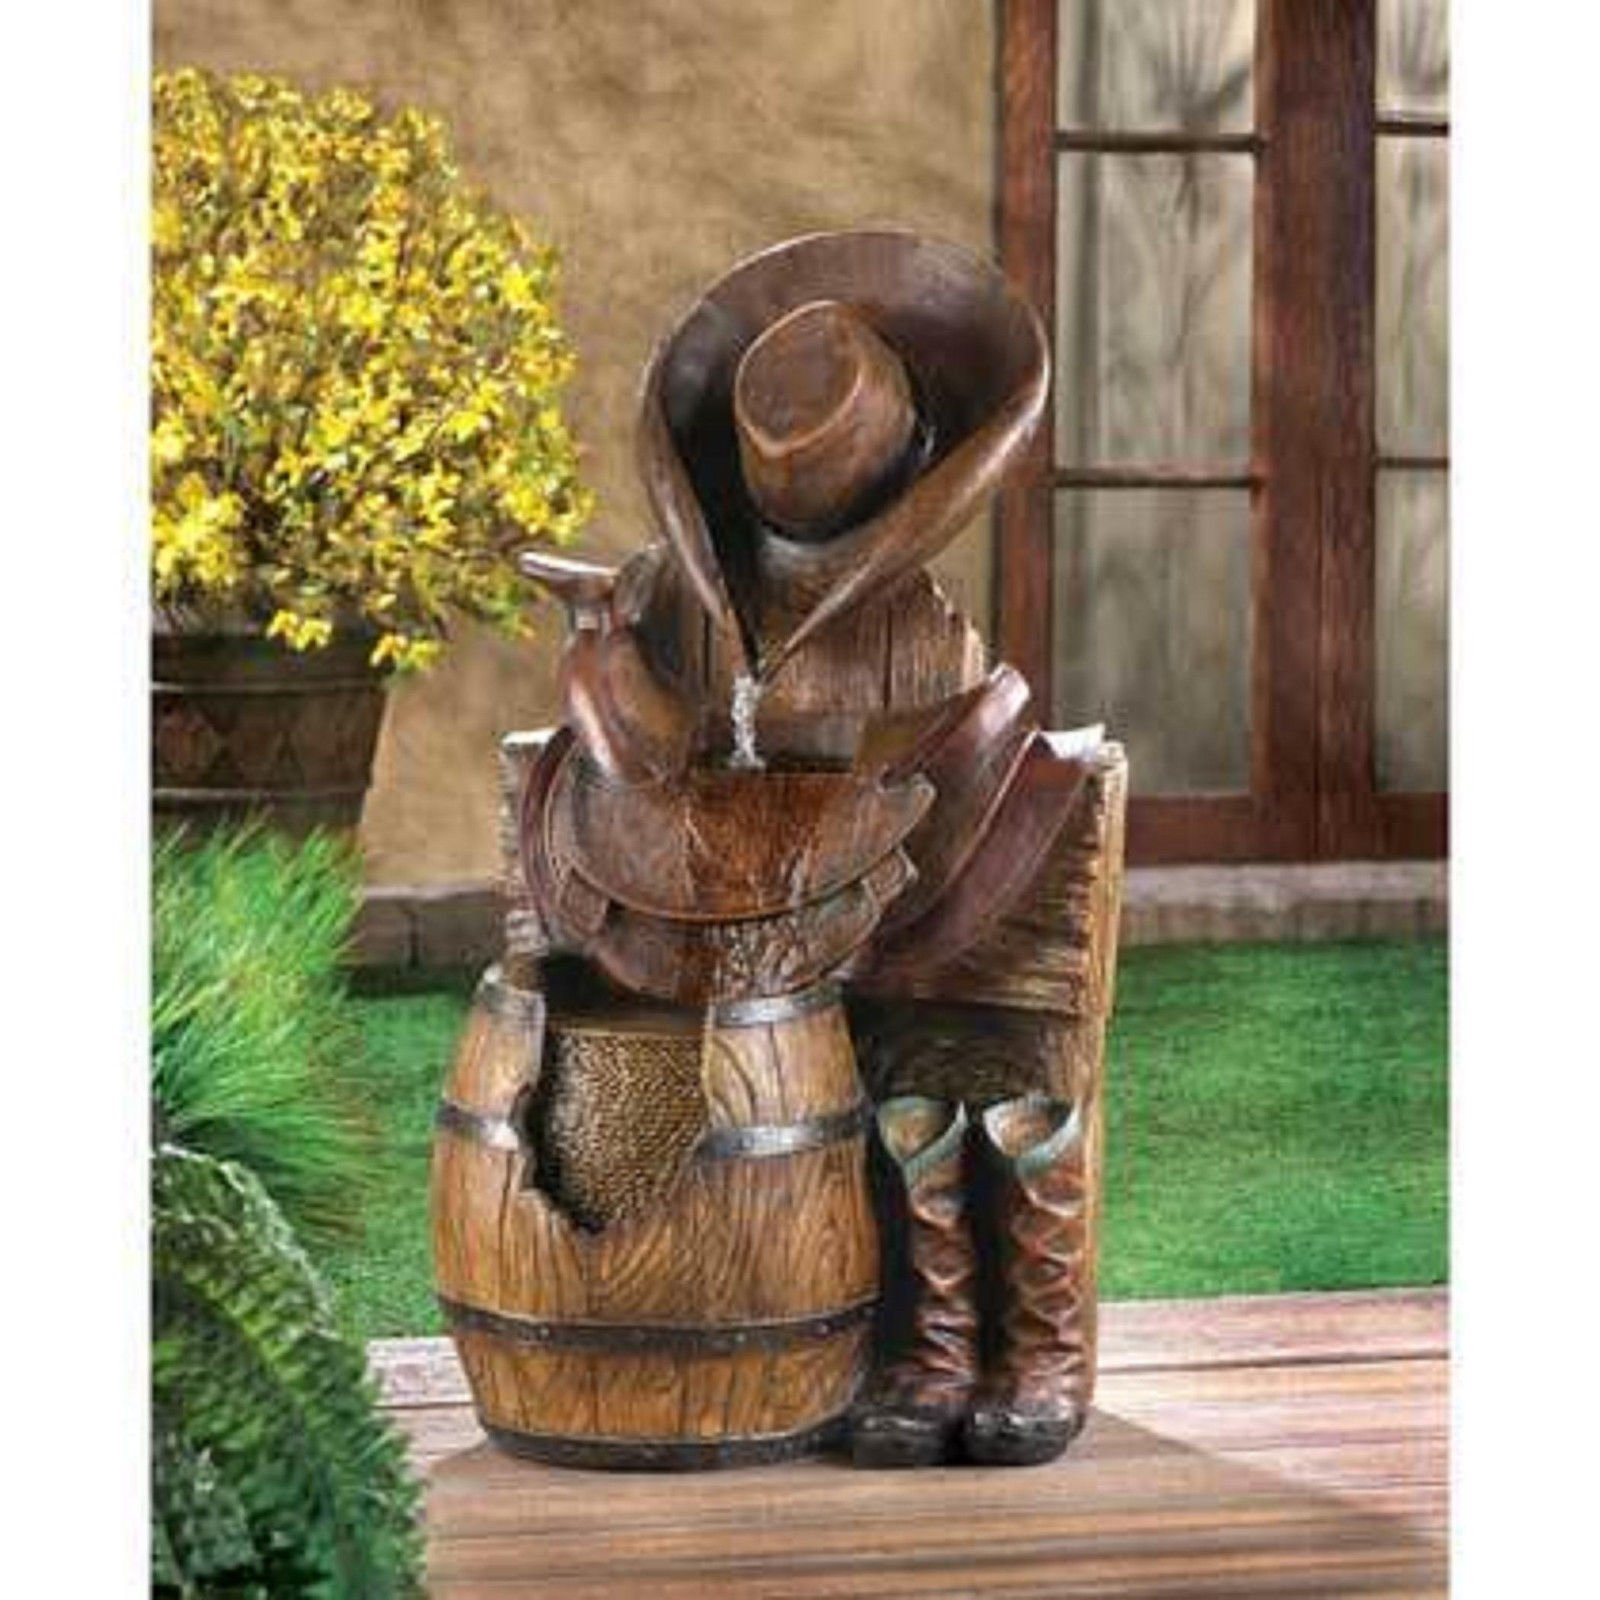 western country cowboy boot horse saddle Statue birdbath Outdoor Garden Fountain